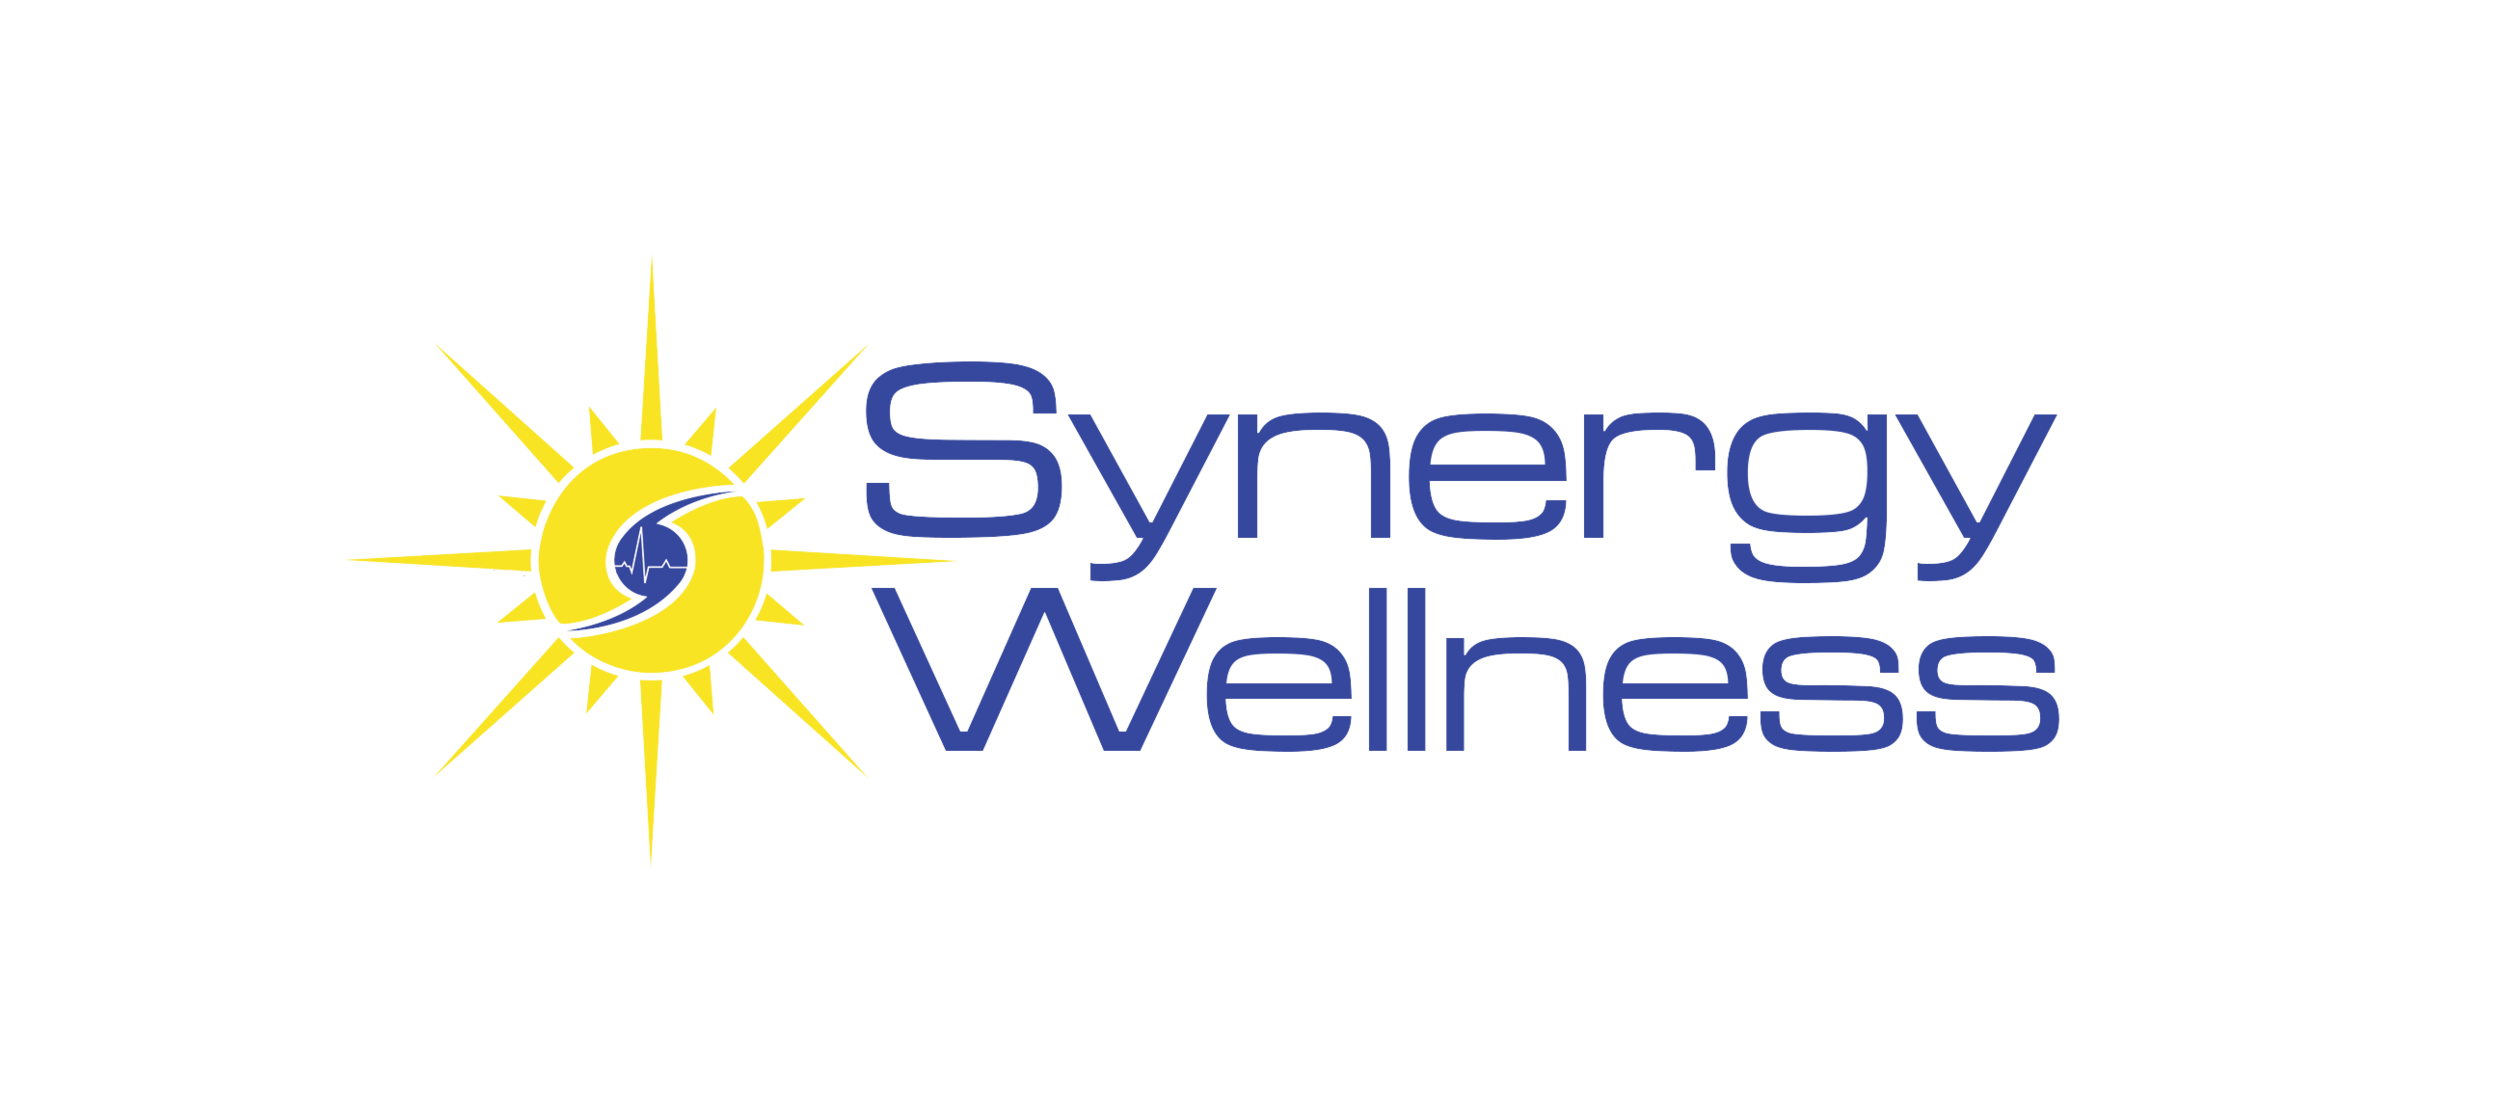 Synergy-Wellness-V2.png